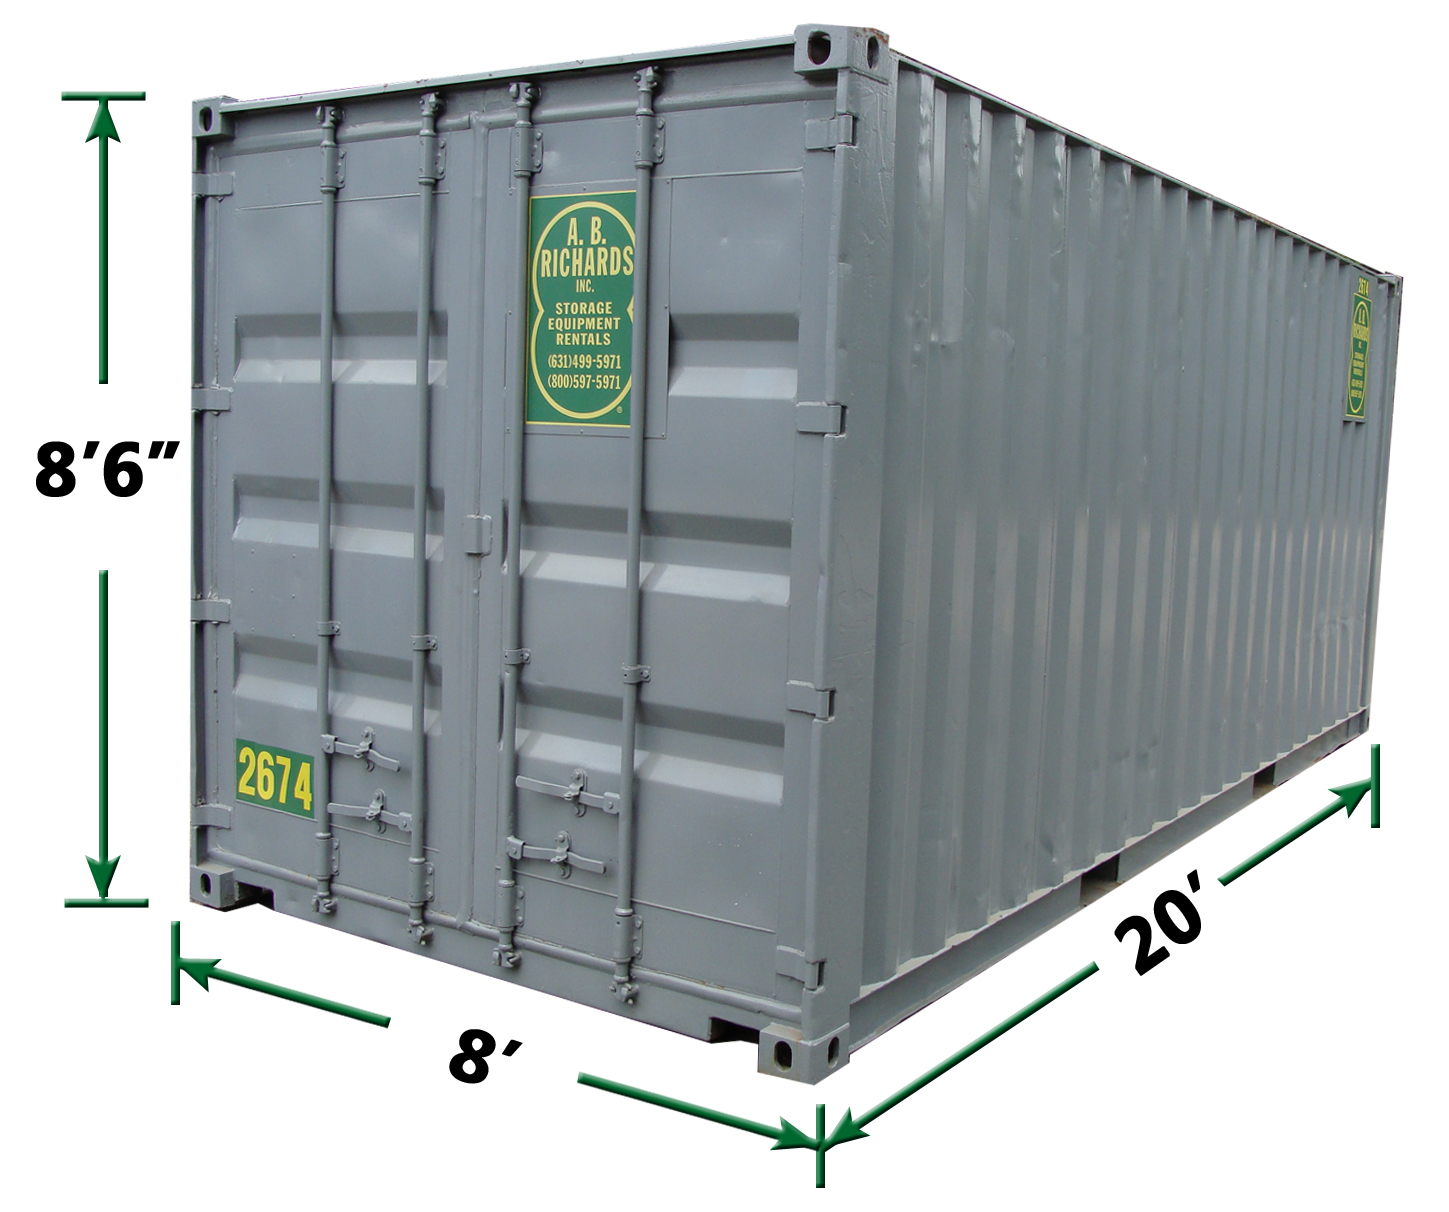 20 Storage Container Rentals A B Richards